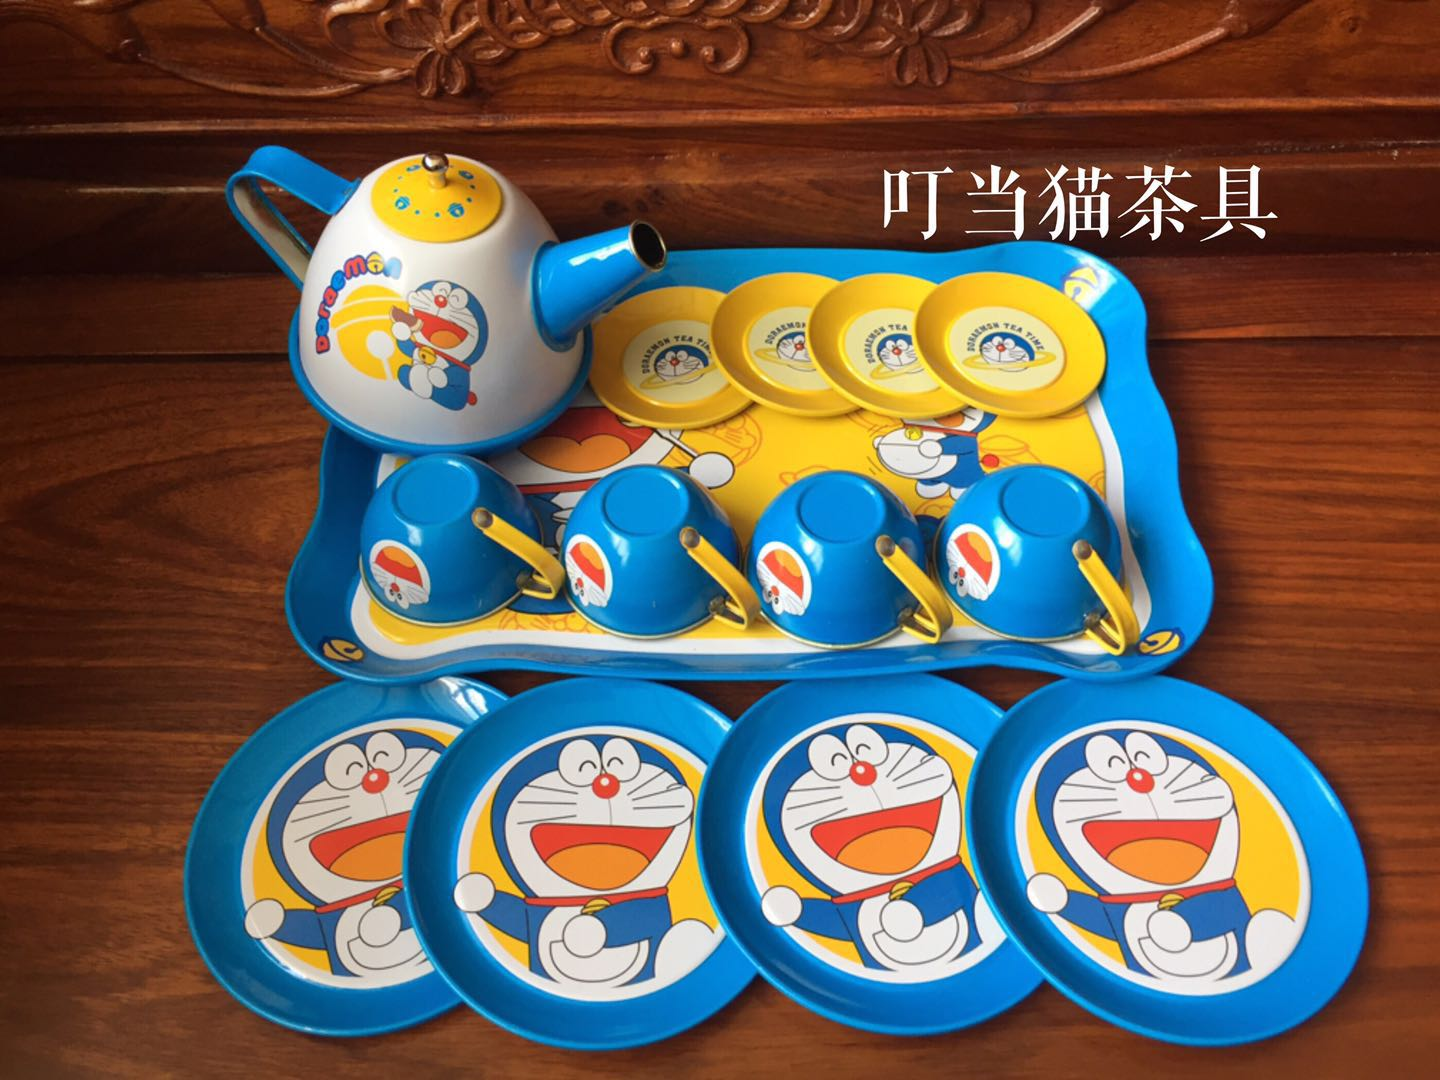 Childrens family toys boys and girls childrens games afternoon tea formal tinplate imitation Teapot Set